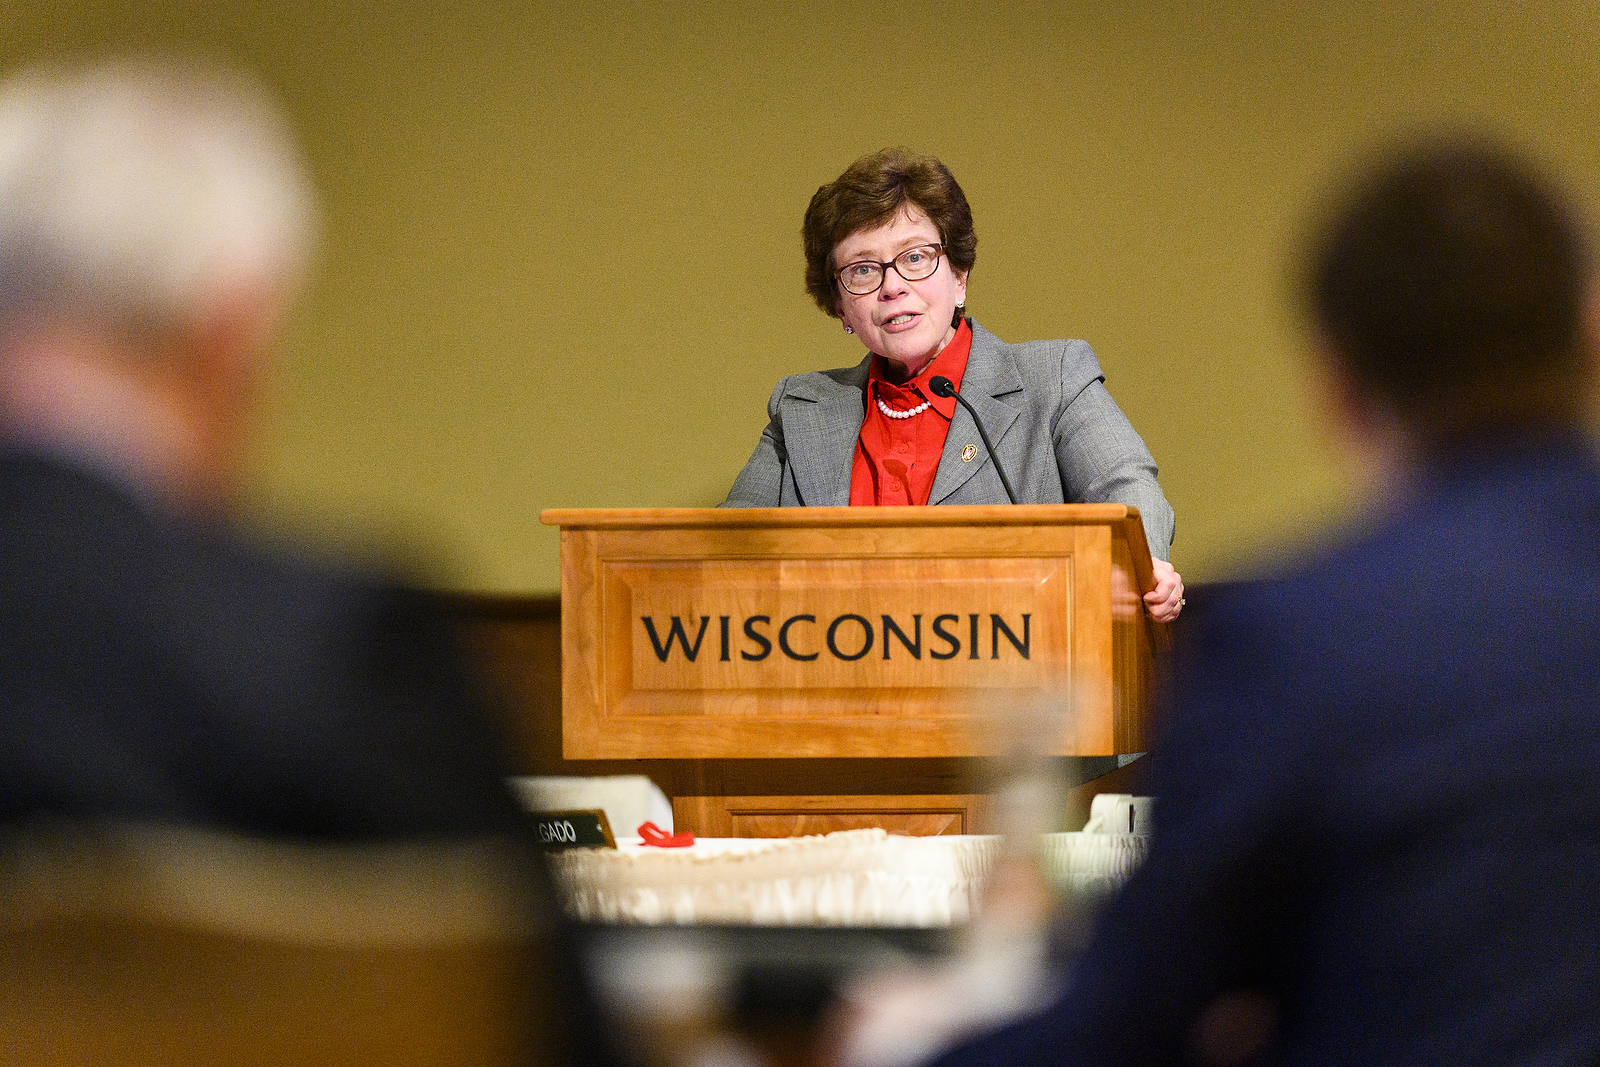 UW-Madison Chancellor Rebecca Blank speaks during her presentation at the UW System Board of Regents meeting hosted at Union South at the University of Wisconsin-Madison on Feb. 7, 2019. (Photo by Bryce Richter /UW-Madison)